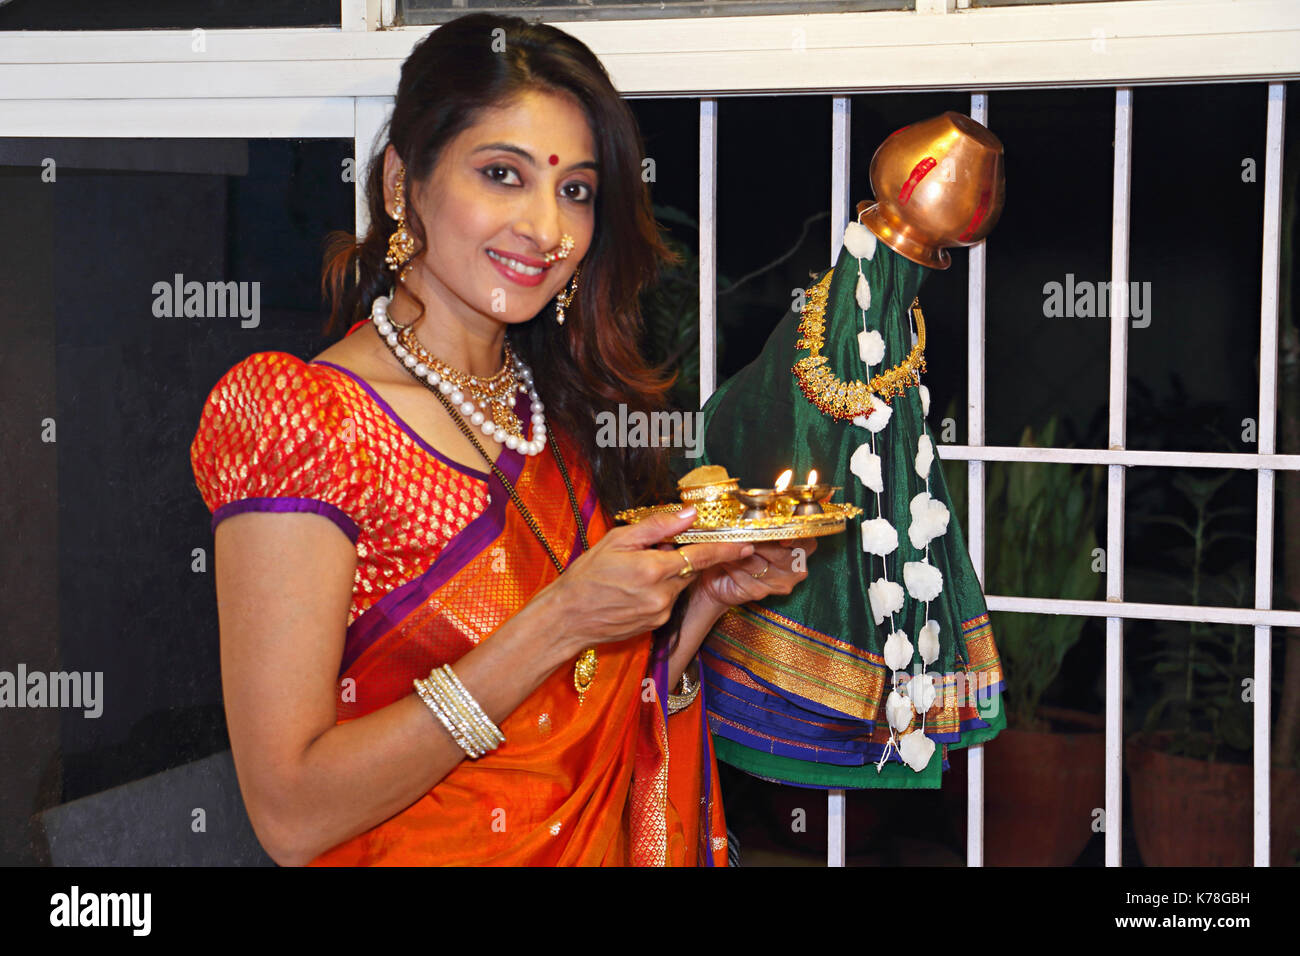 Indian woman standing doing puja on gudi padwa traditional new year for Marathi Hindus Stock Photo